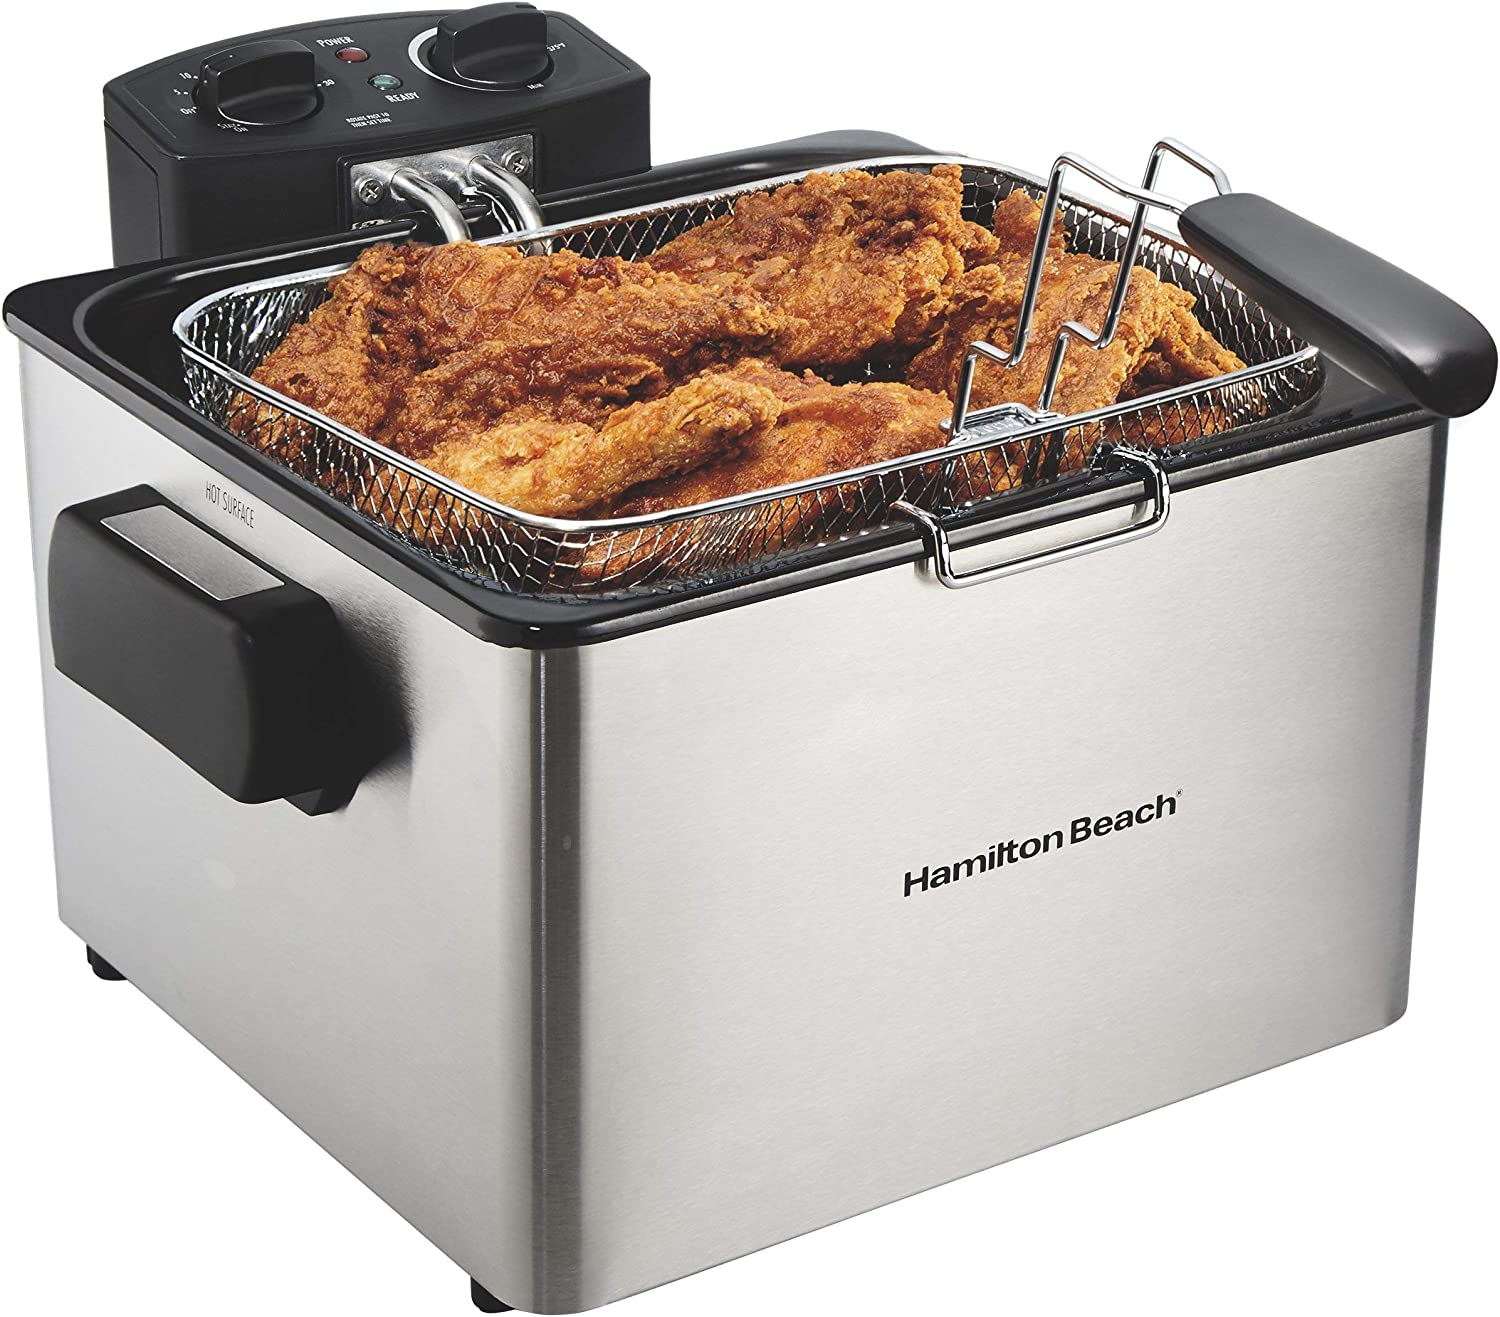 Hamilton Beach (35035) Deep Fryer, With Basket, 4.5 Liter Oil Capacity, Electric, Professional Grade (Renewed)